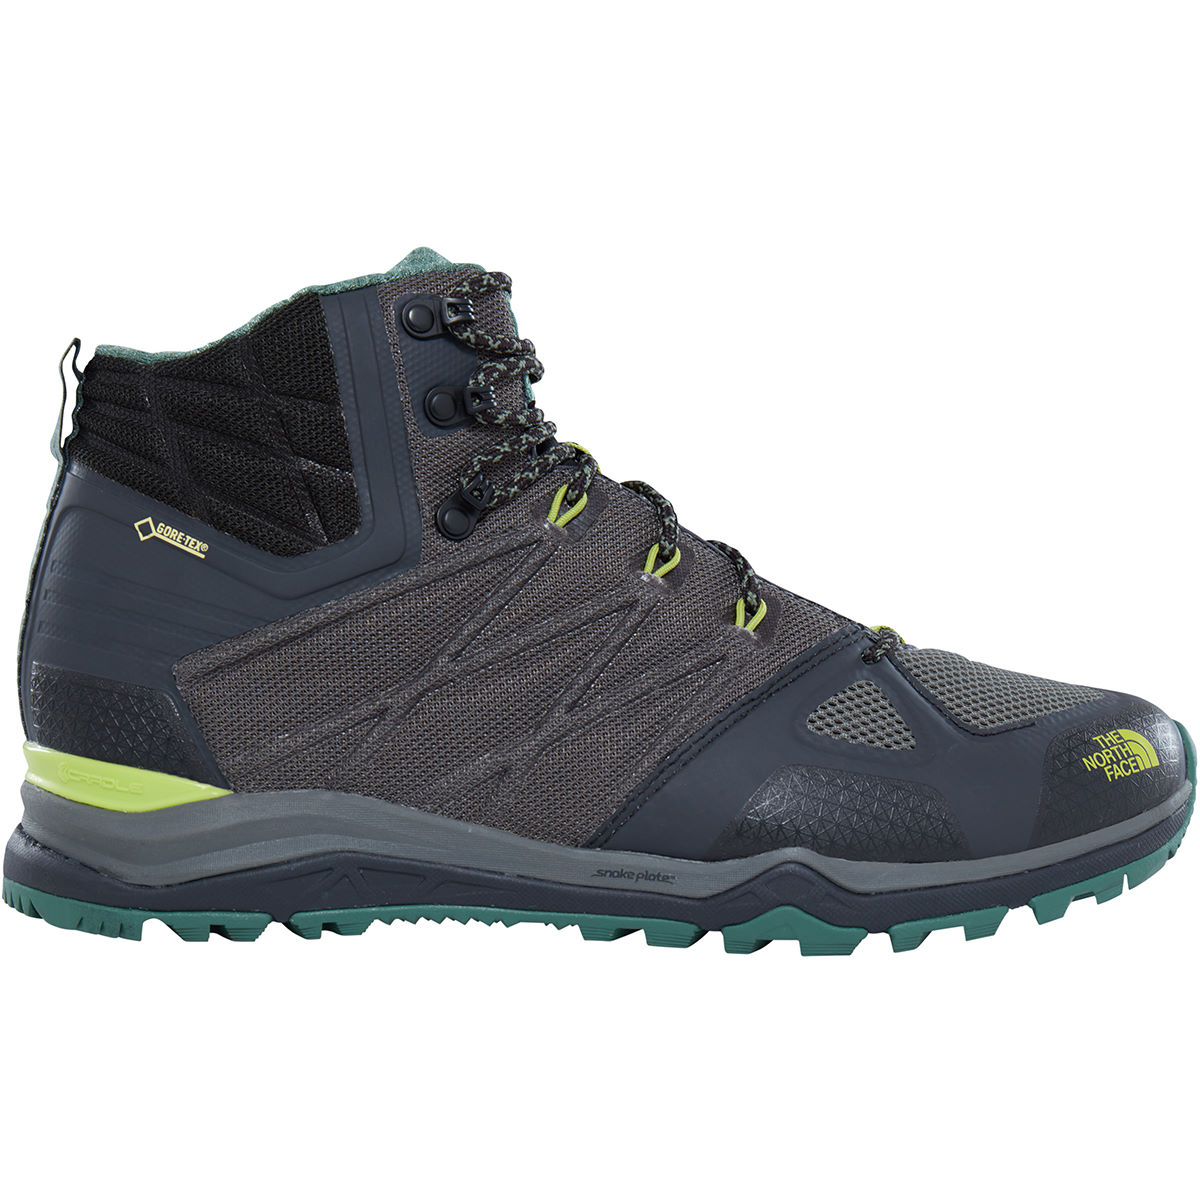 Chaussures The North Face Ultra Fastpack II Mid Gore-Tex - 7.5